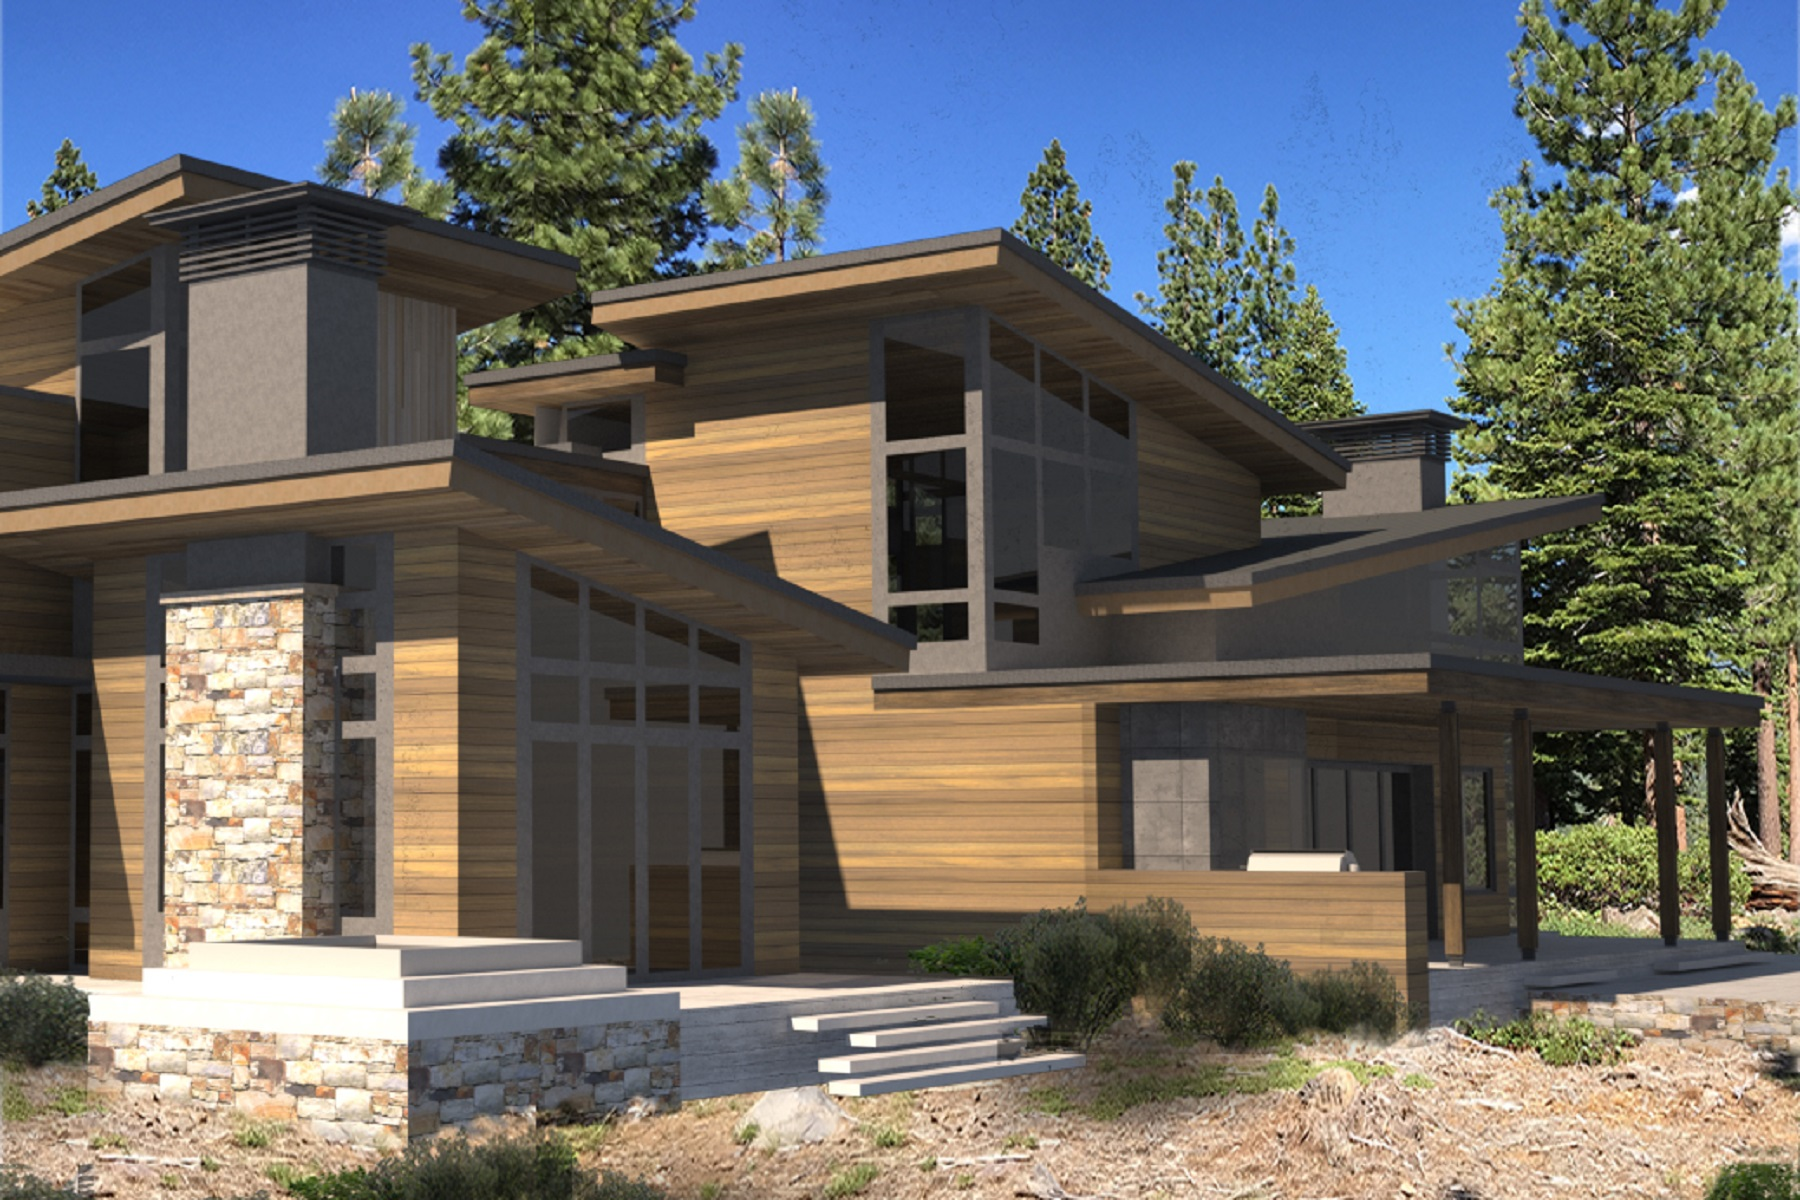 Additional photo for property listing at 19150 Glades Place  Truckee, California 96161 United States